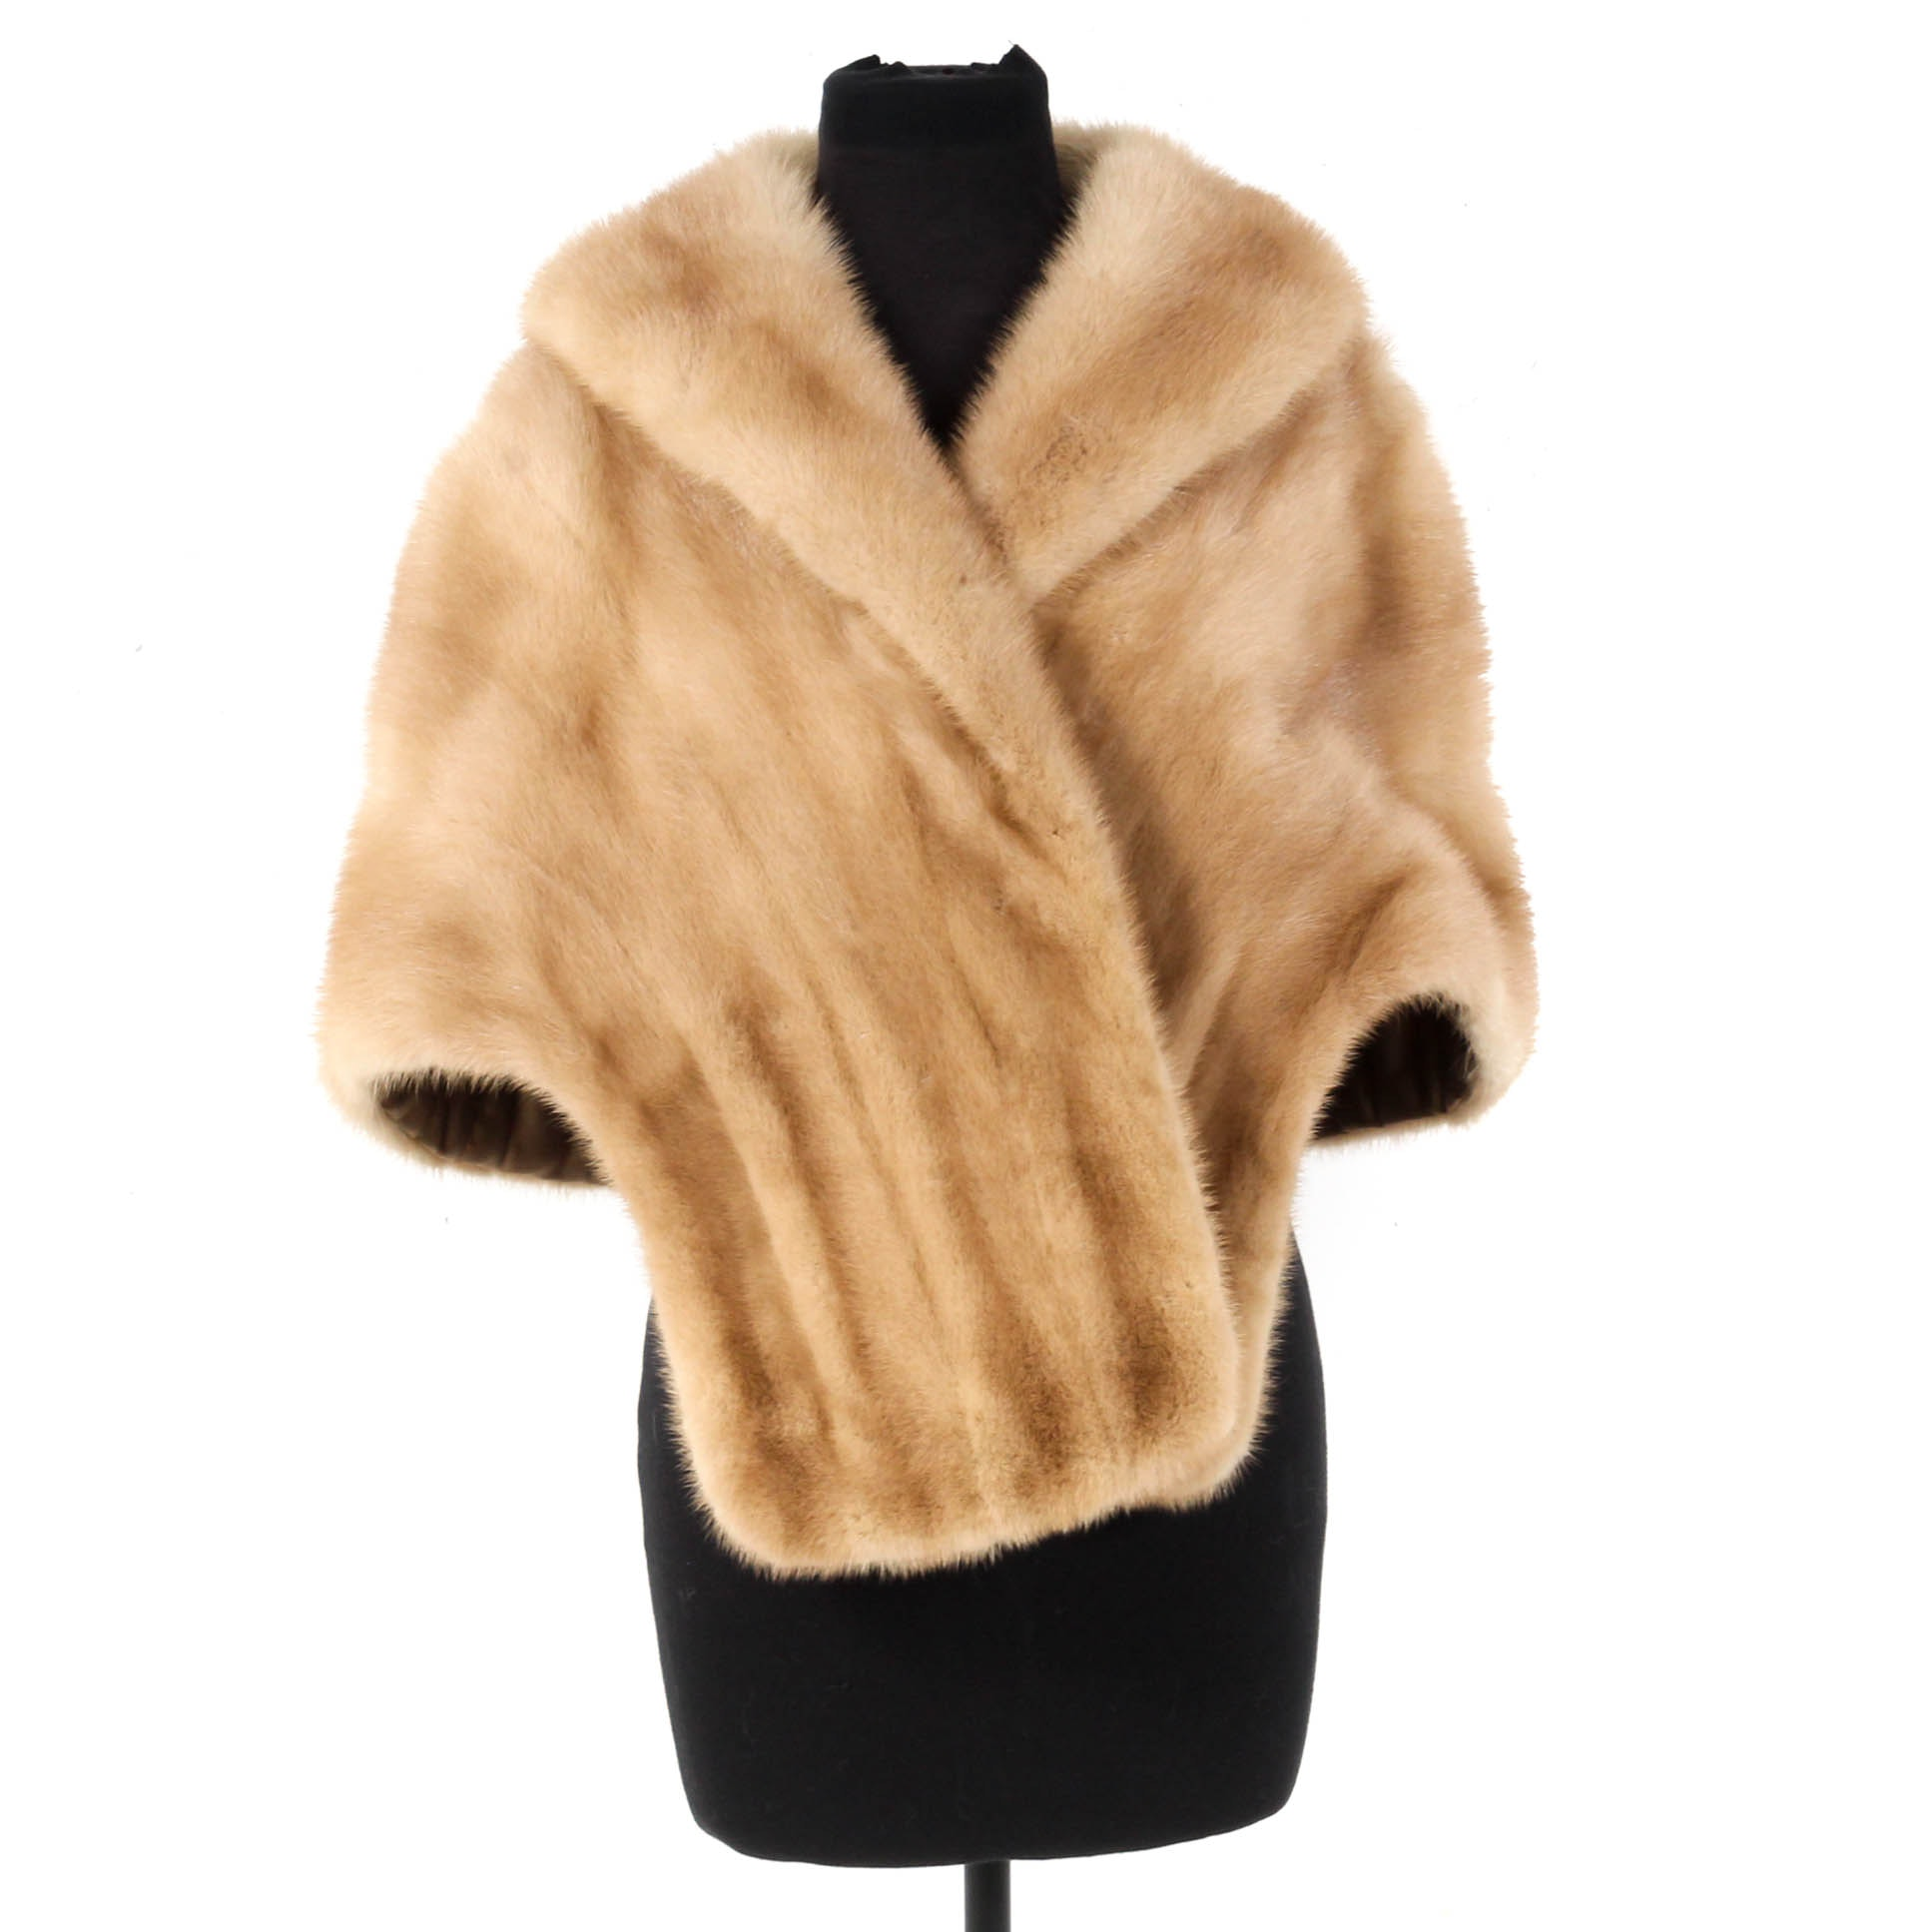 Mink Fur Stole With Shawl Collar, Vintage